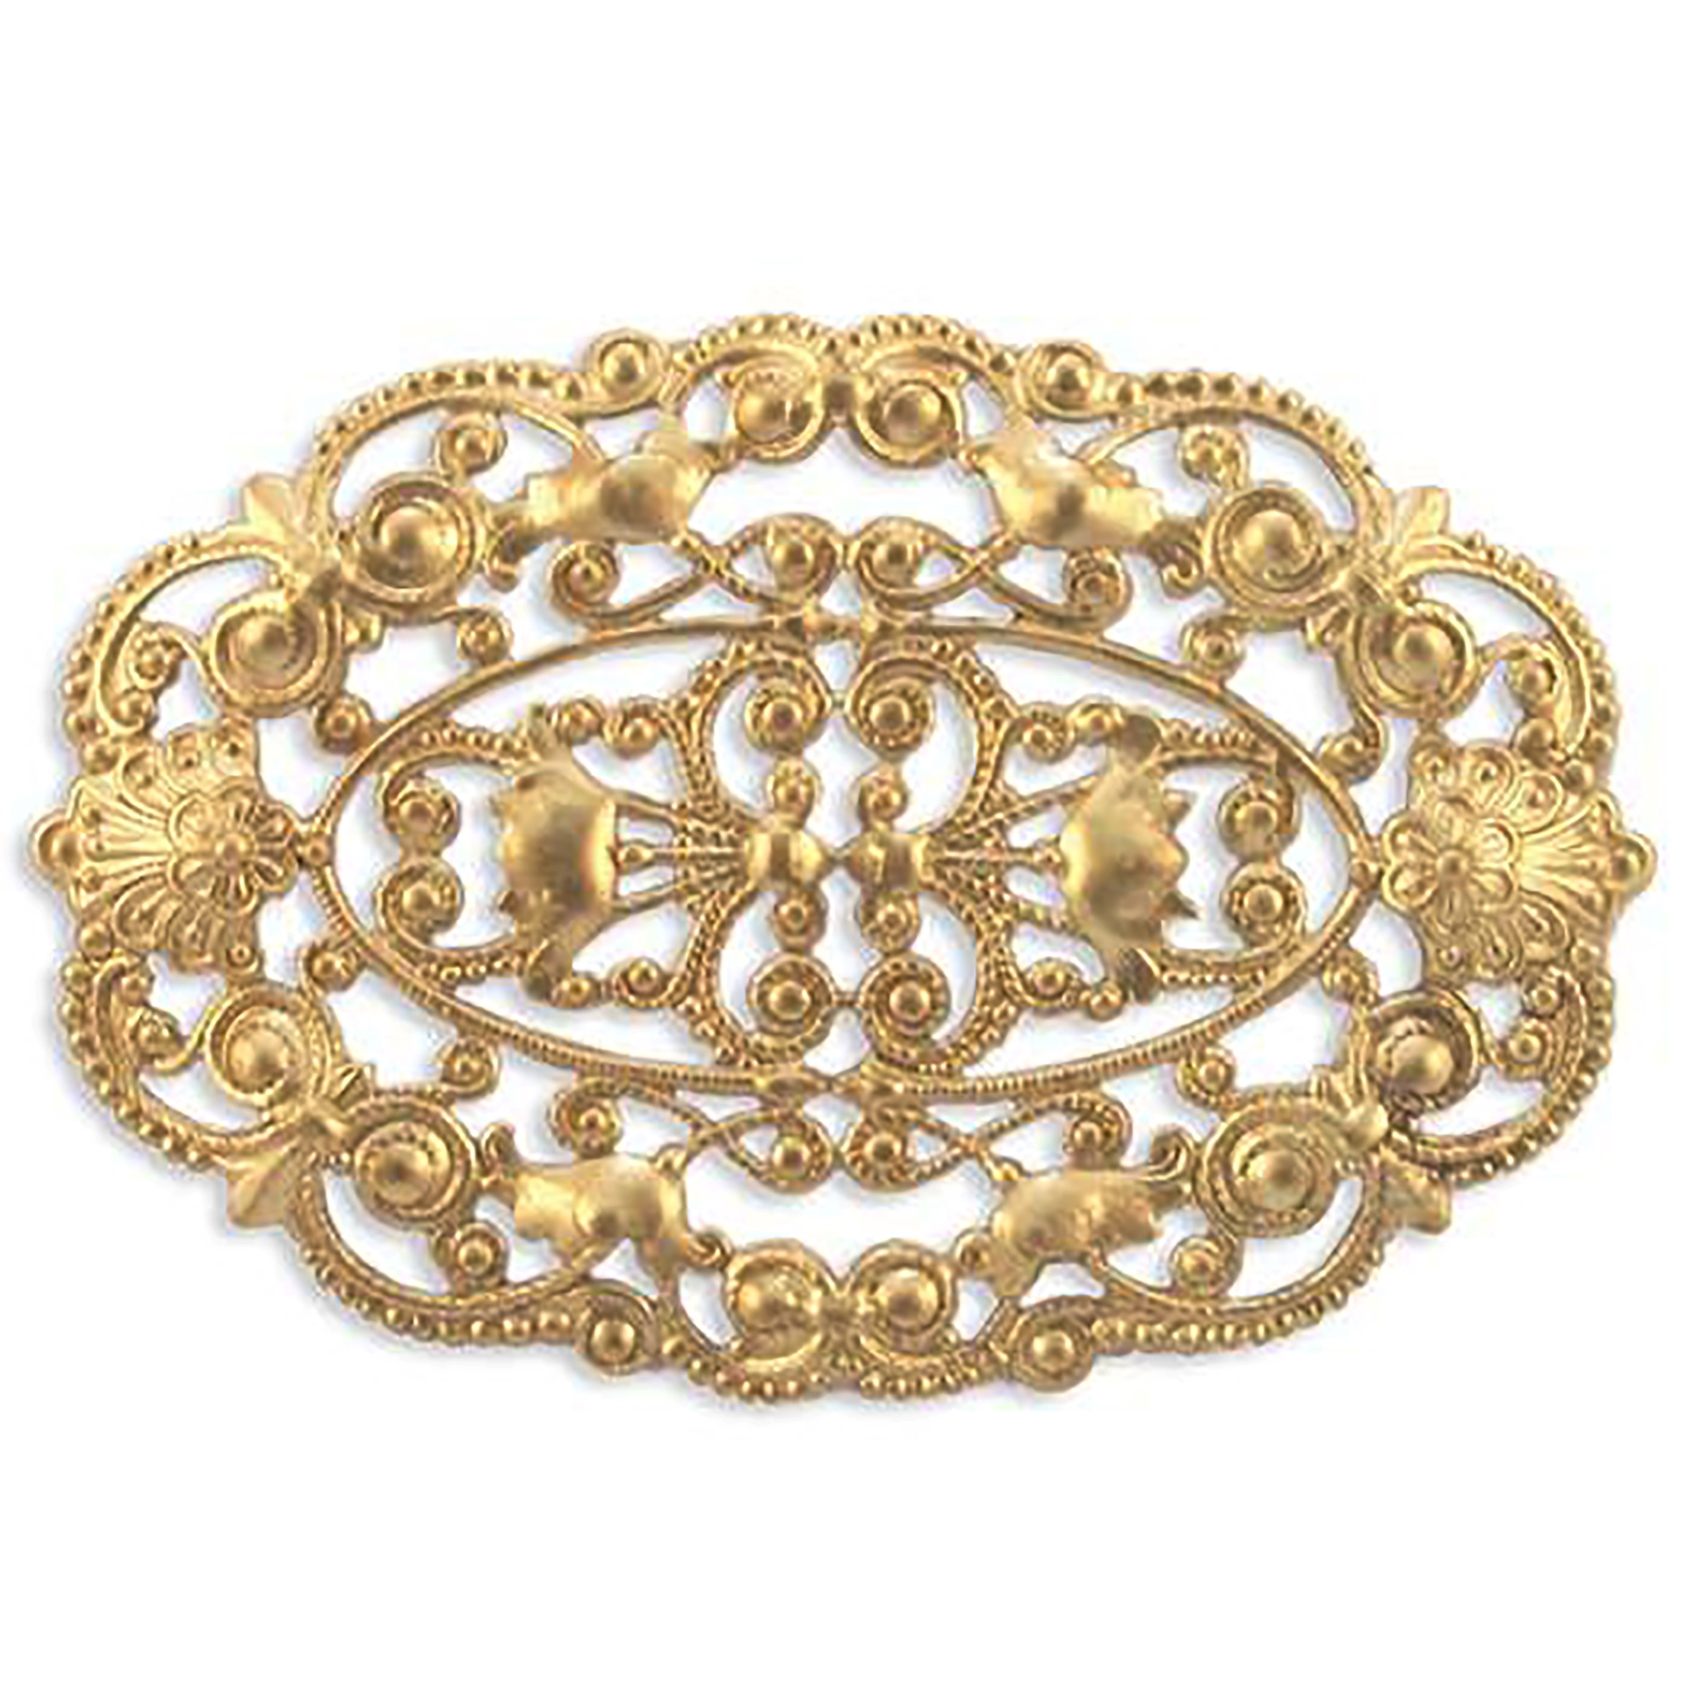 Victorian style filigree, raw brass, unplated brass, filigree, US made, victorian style, 3x2 inches, victorian filigree, brass, nickel free, jewelry making, jewelry supplies, vintage supplies, jewelry findings, B'sue Boutiques, 06237